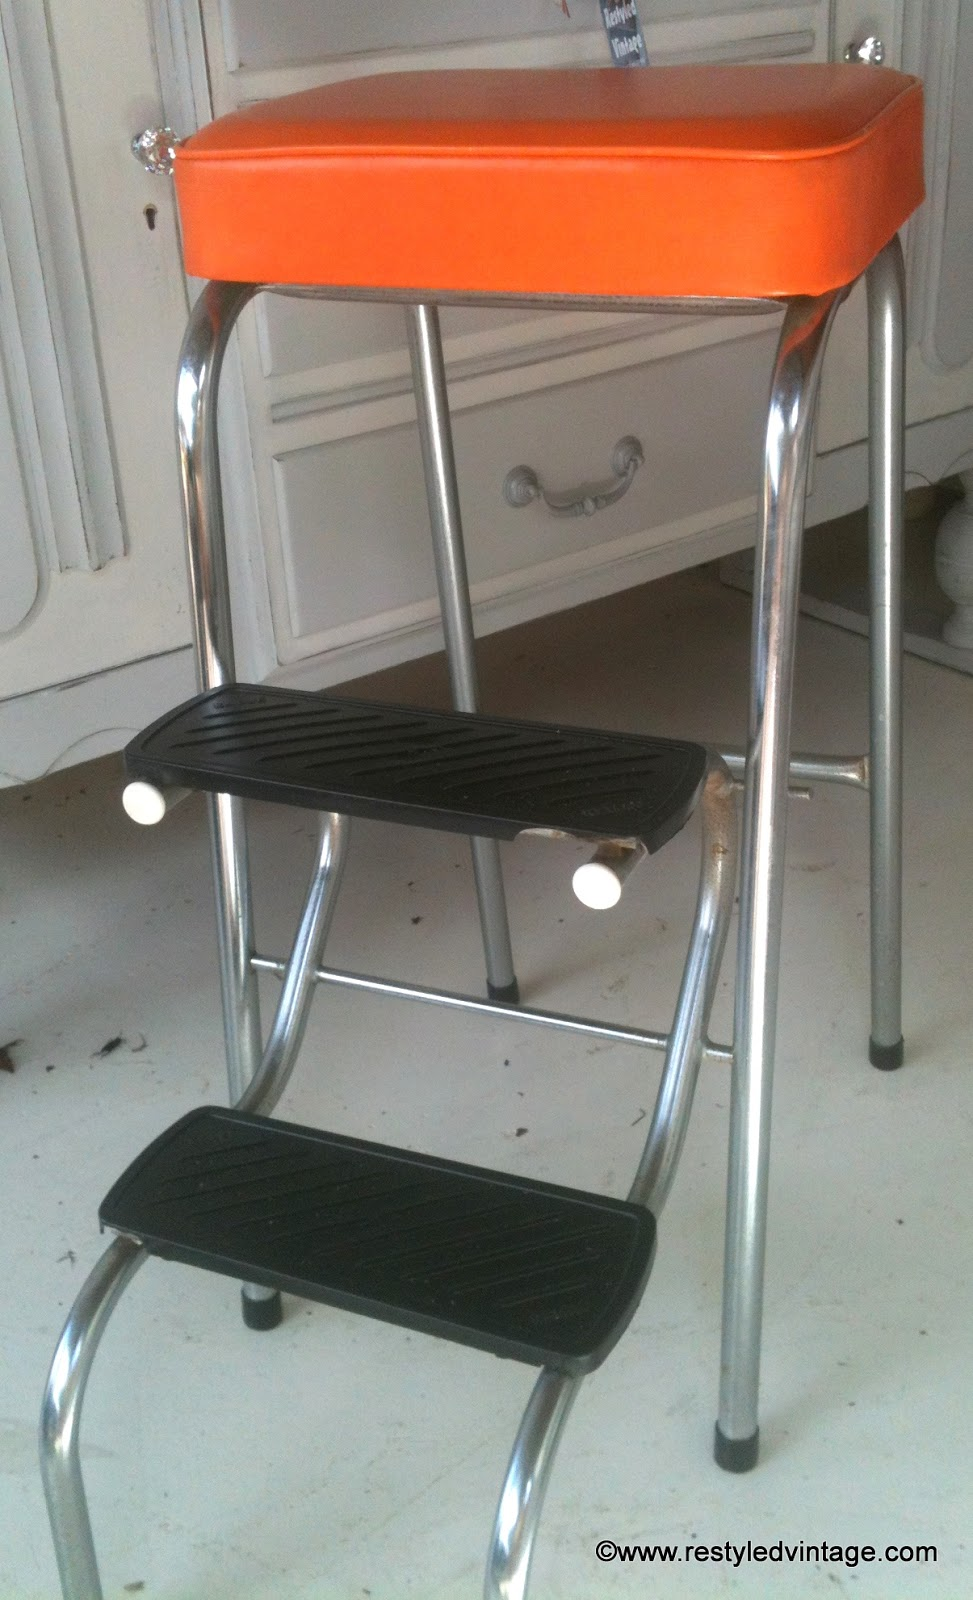 Retro Kitchen Step Stool Makeover & Restyled Vintage: Retro Kitchen Step Stool Makeover islam-shia.org